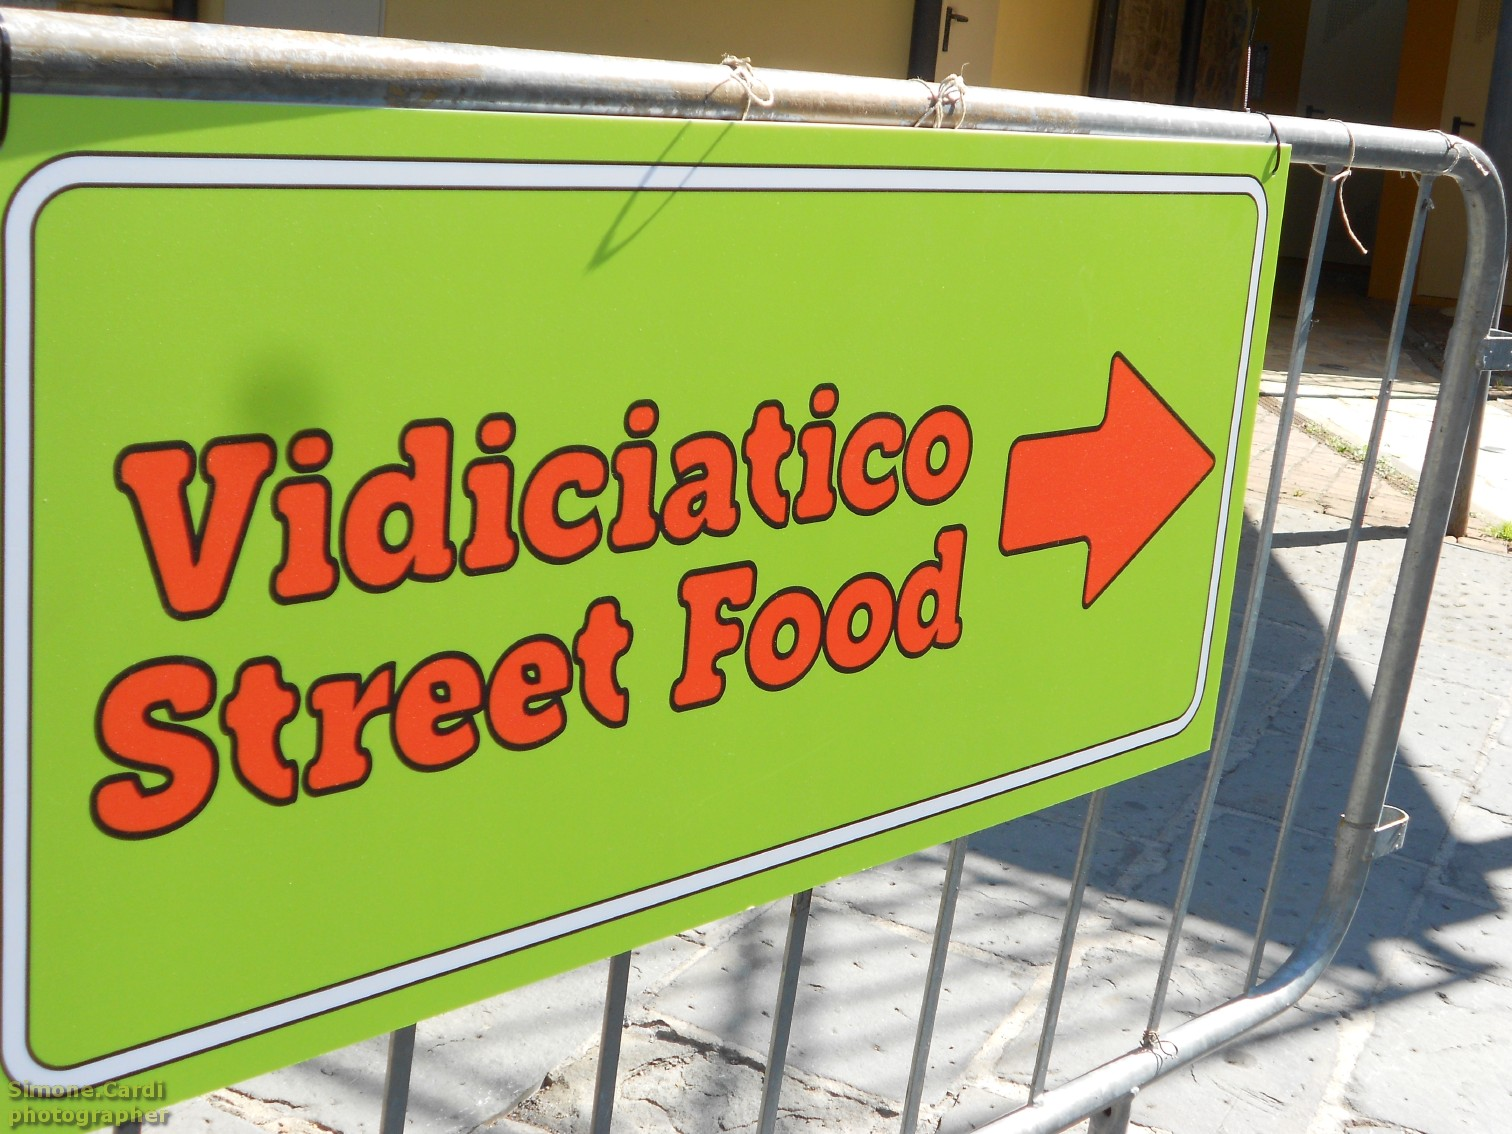 Vidiciatico Street Food cartello